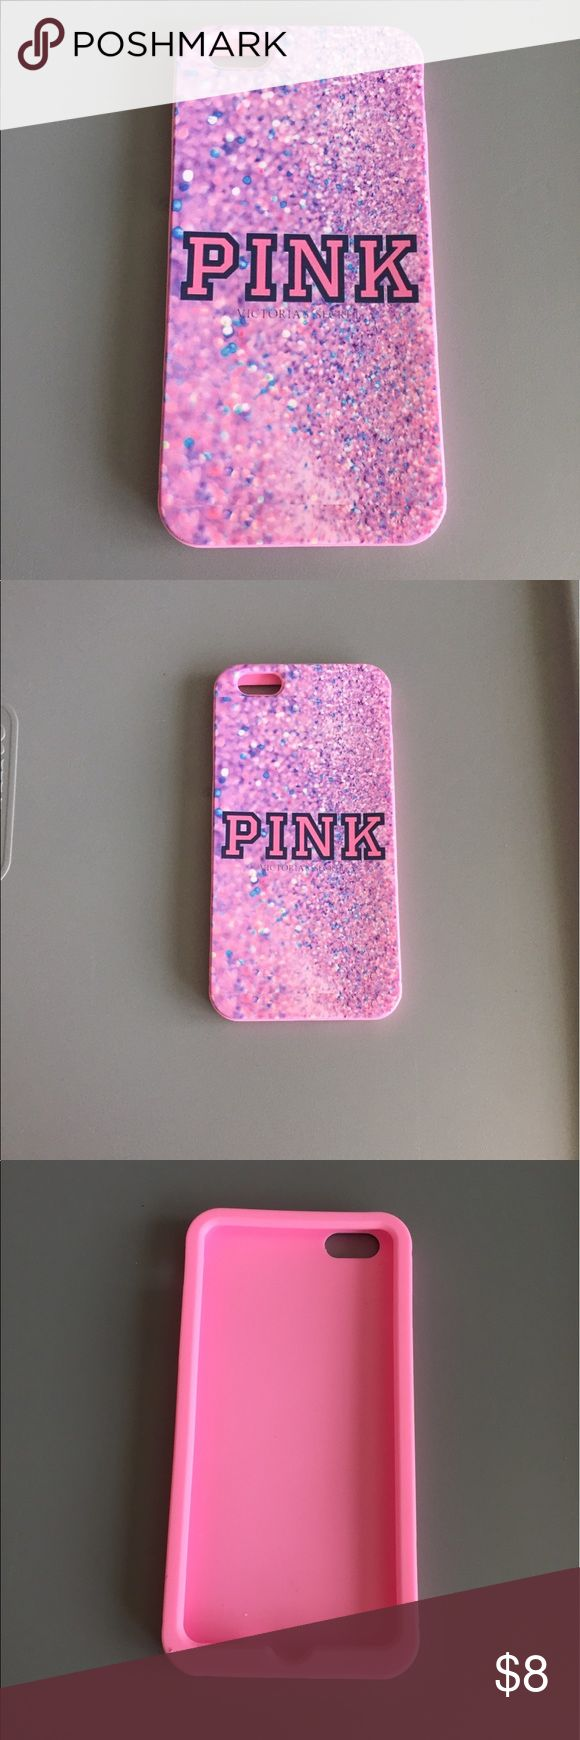 iPhone 6 Plus/6s Plus Victoria's Secret pink case Brand new iPhone 6 Plus /6s plus (fits both) Victoria's Secret PINK. Case! This is a silicone case that will protect your phones edges/back from being scratched. Does not protect screen. Perfect case all around! Comfortable feel and so cute! Best price! PINK Victoria's Secret Accessories Phone Cases